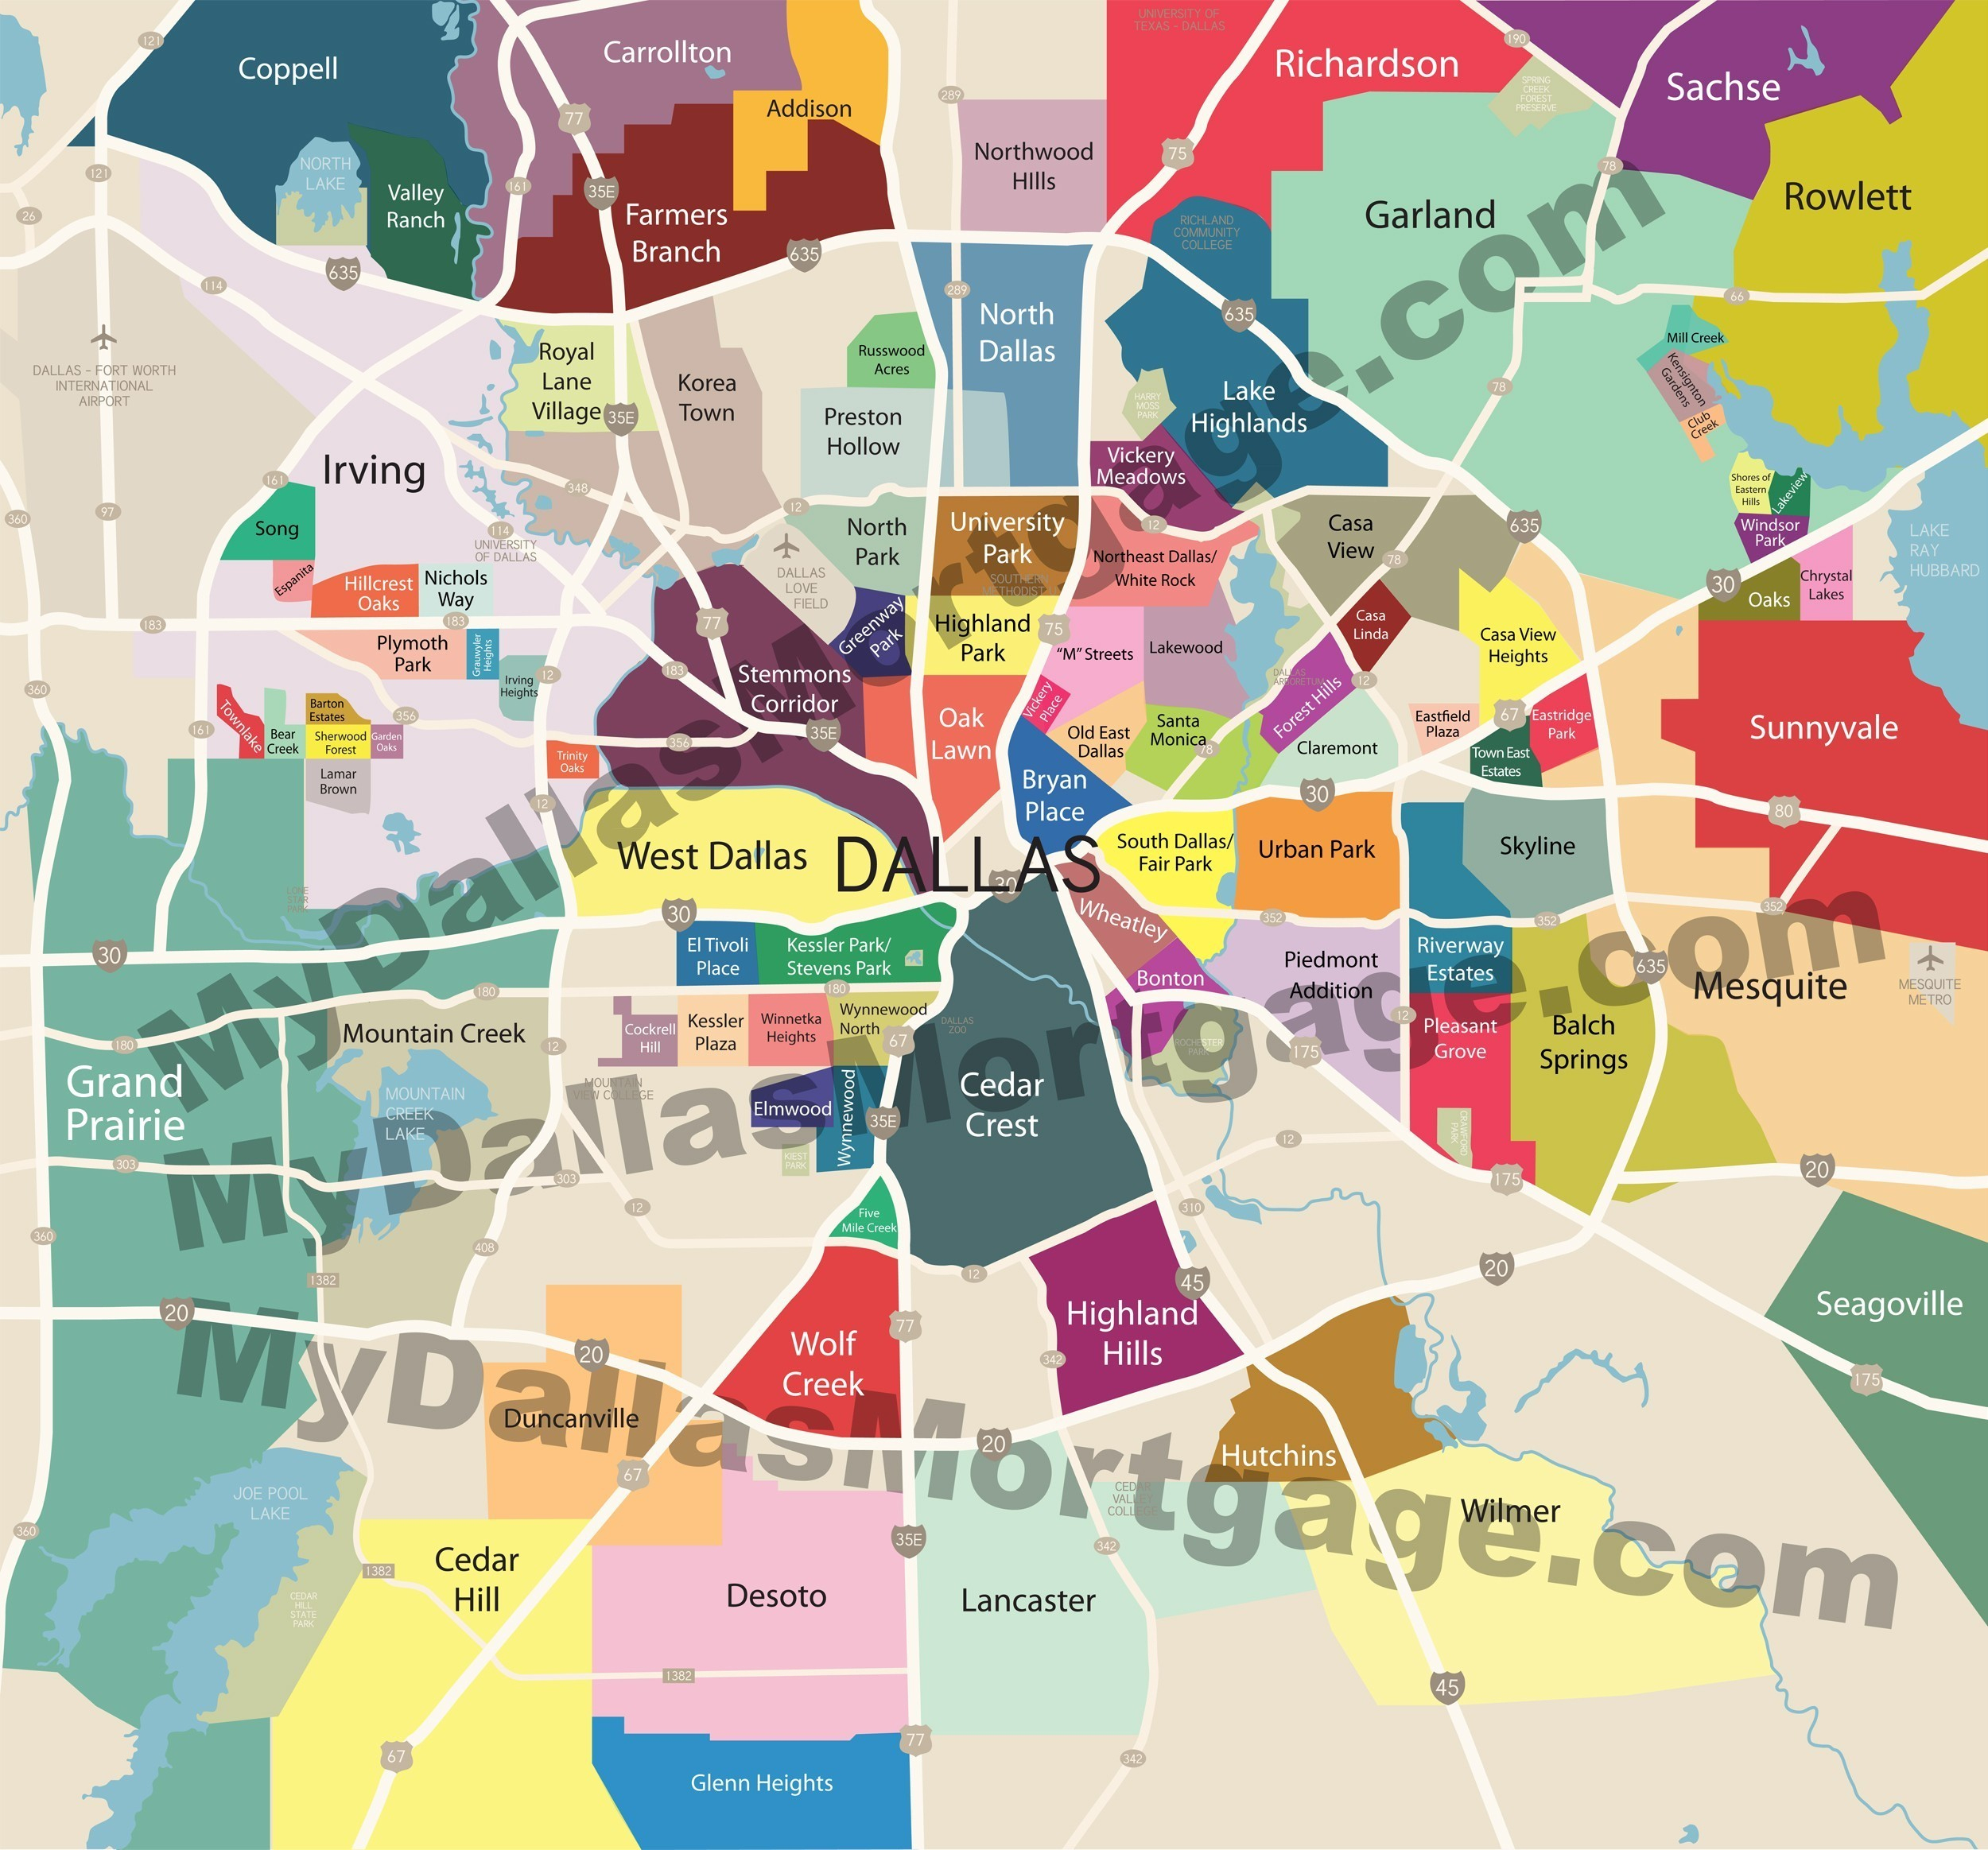 Images Neighborhoods Of Dallas And Surrounding Areas Google Map - Google Maps Dallas Texas